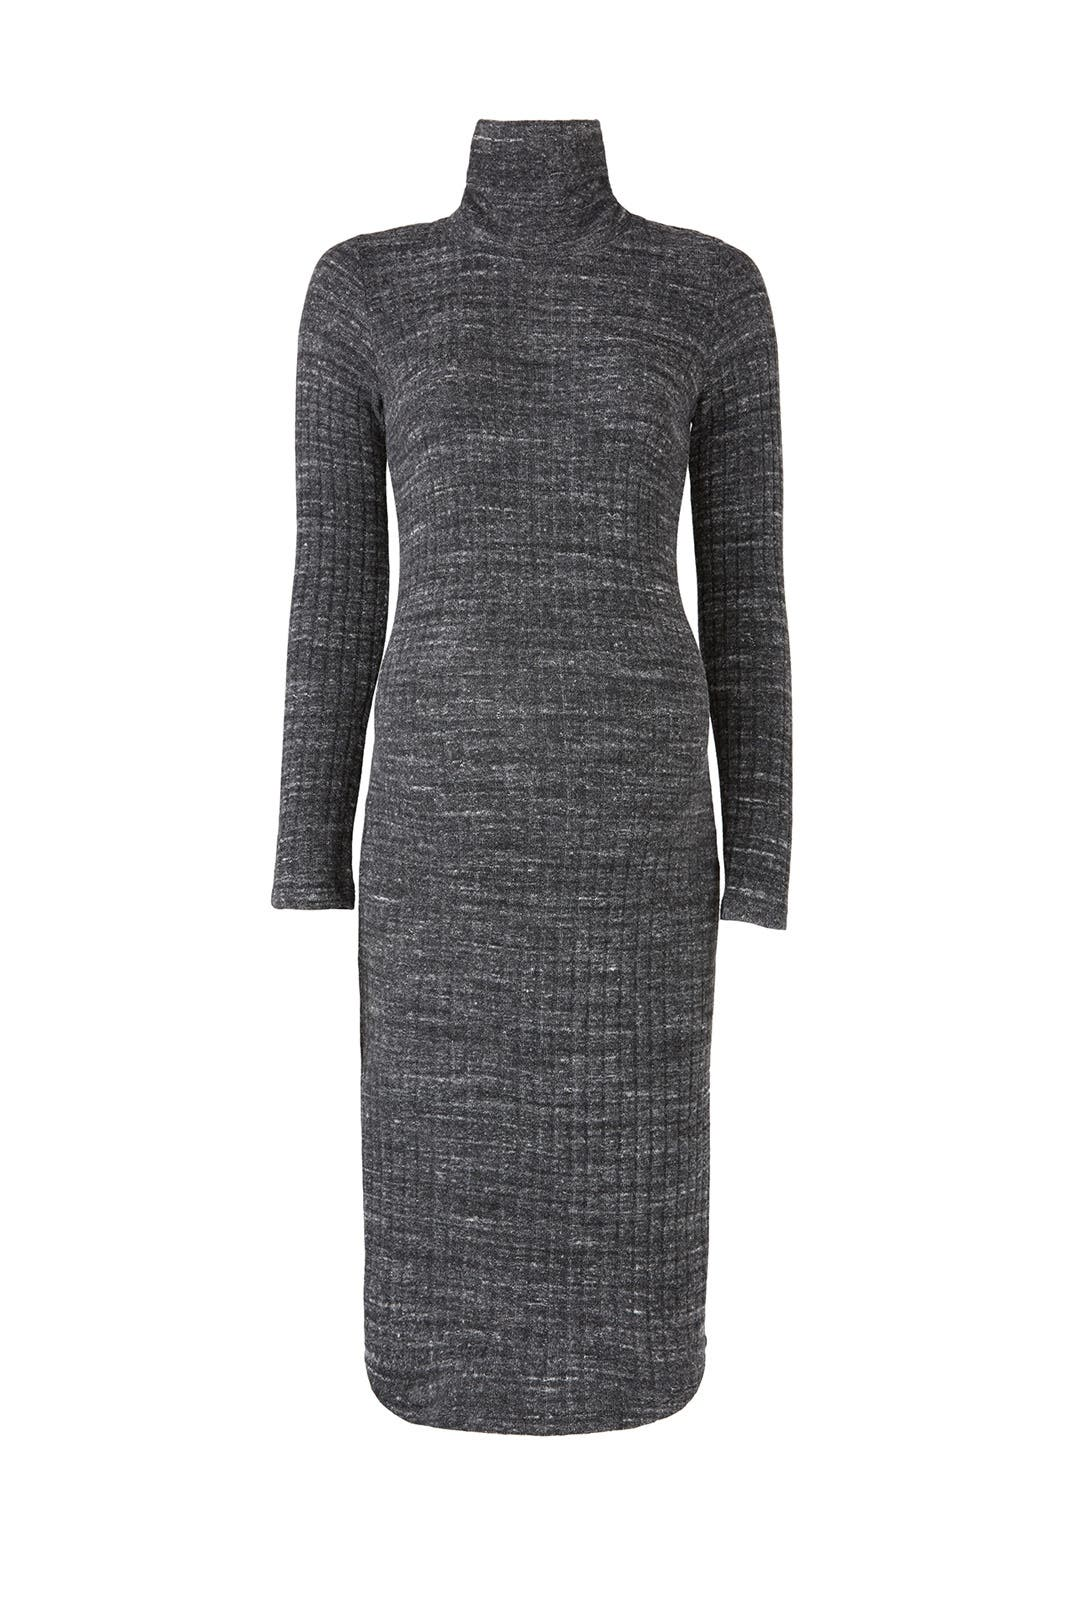 Charocal maternity dress by monrow for 35 rent the runway ombrellifo Gallery